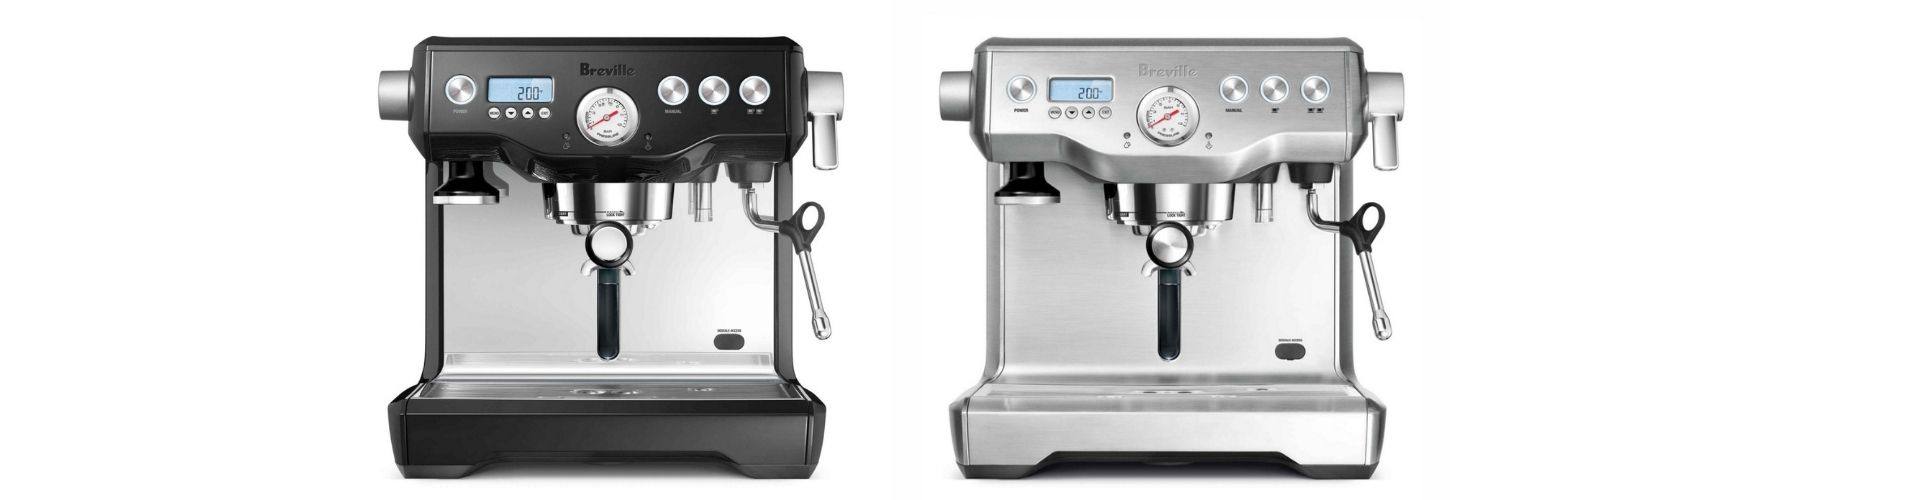 breville dual boiler featured image